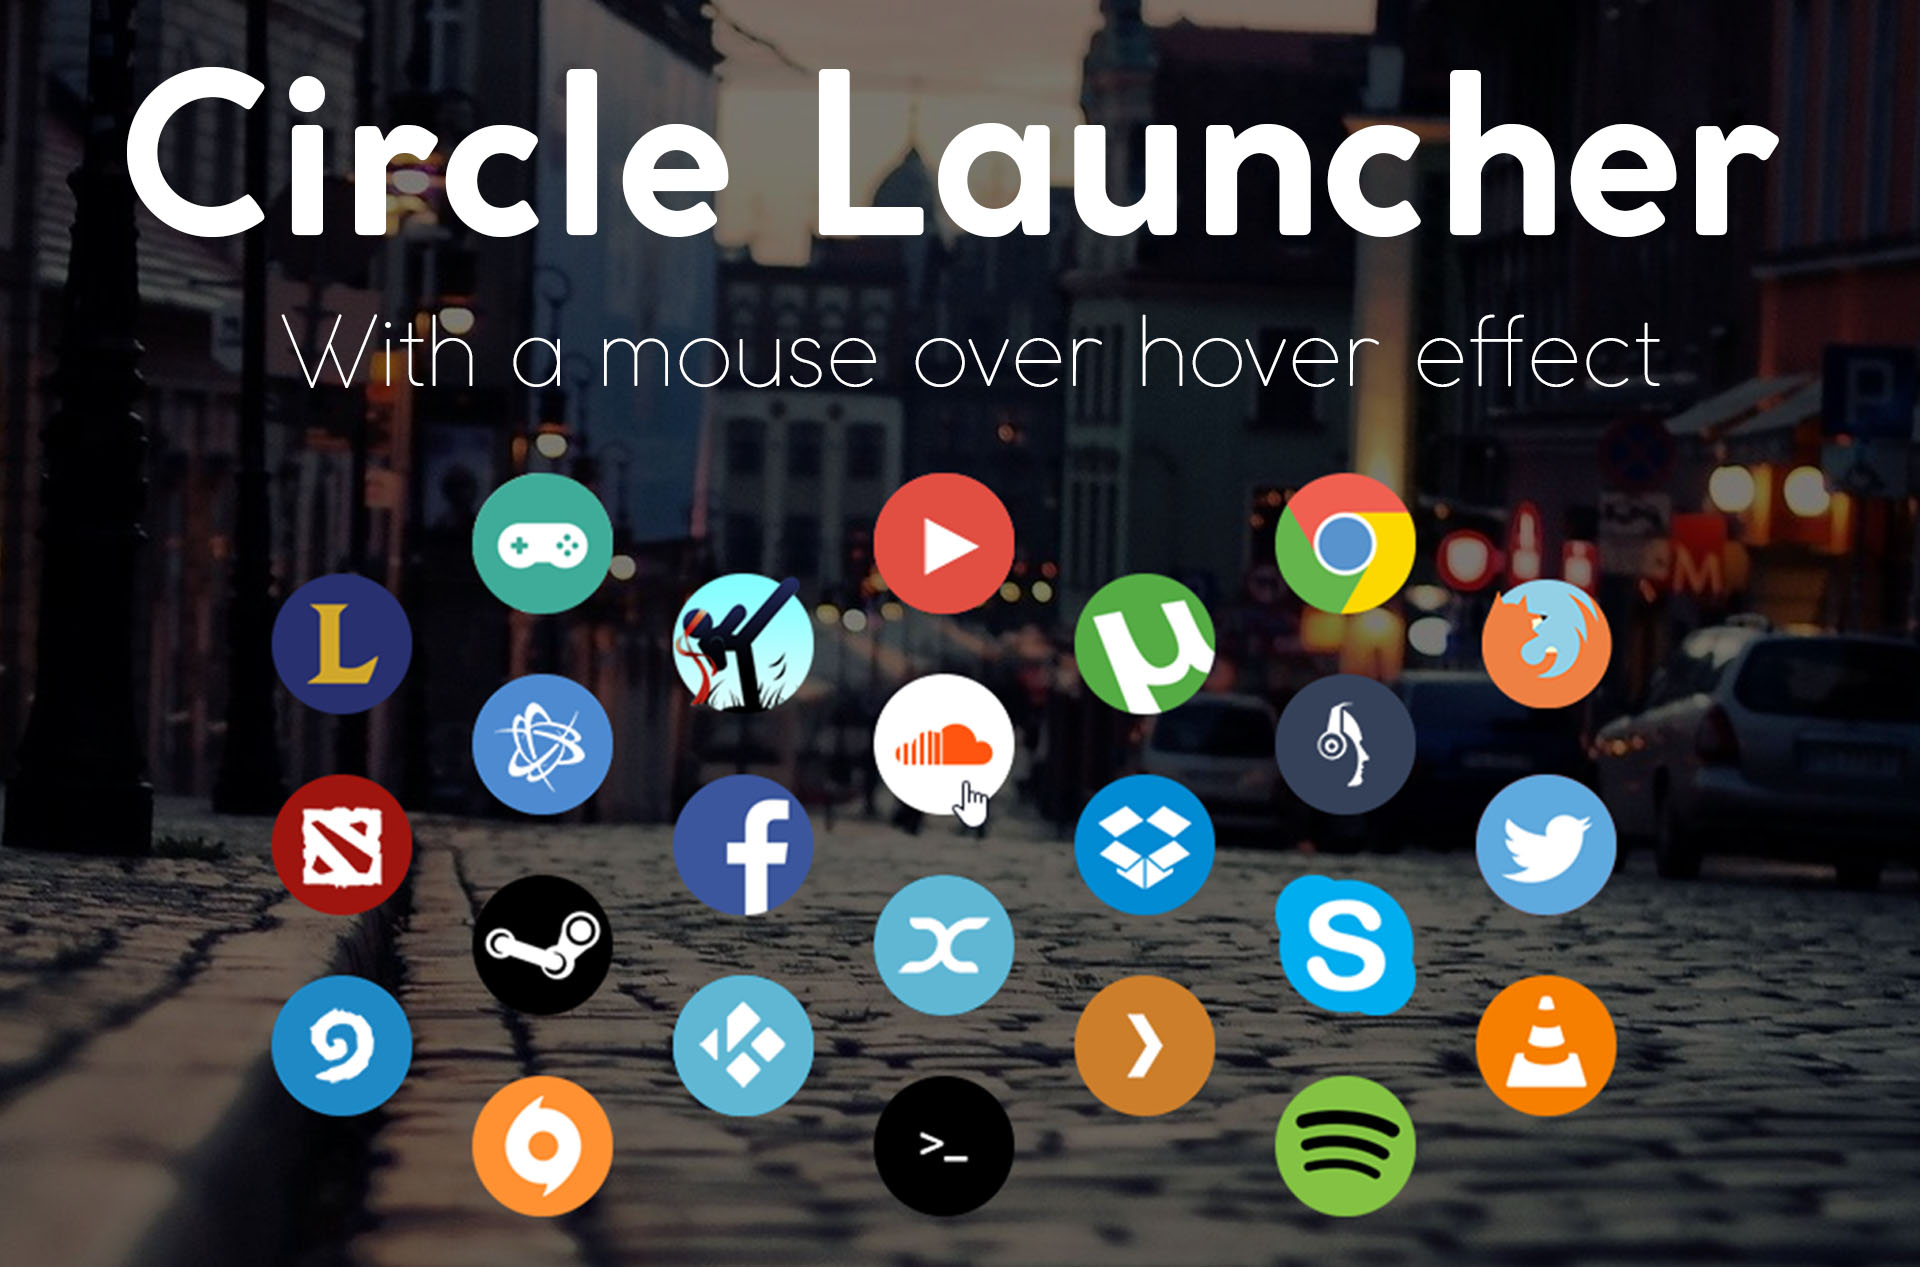 Circle Launcher 2 11 - 03-Aug-2016 by Lybrica on DeviantArt